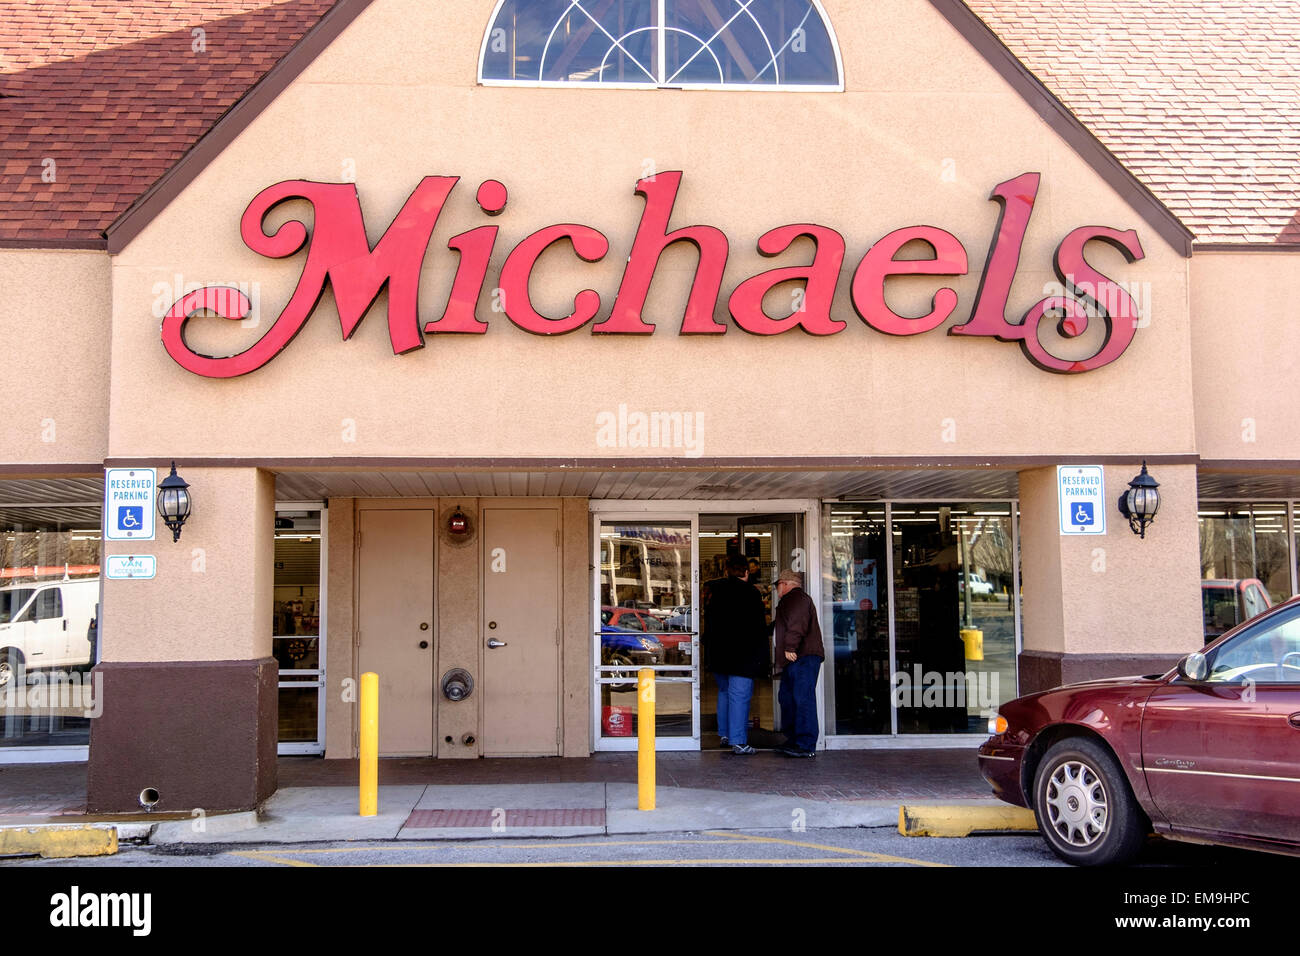 Exterior storefront of Michaels arts and crafts store in Oklahoma City, Oklahoma,  USA. - Stock Image